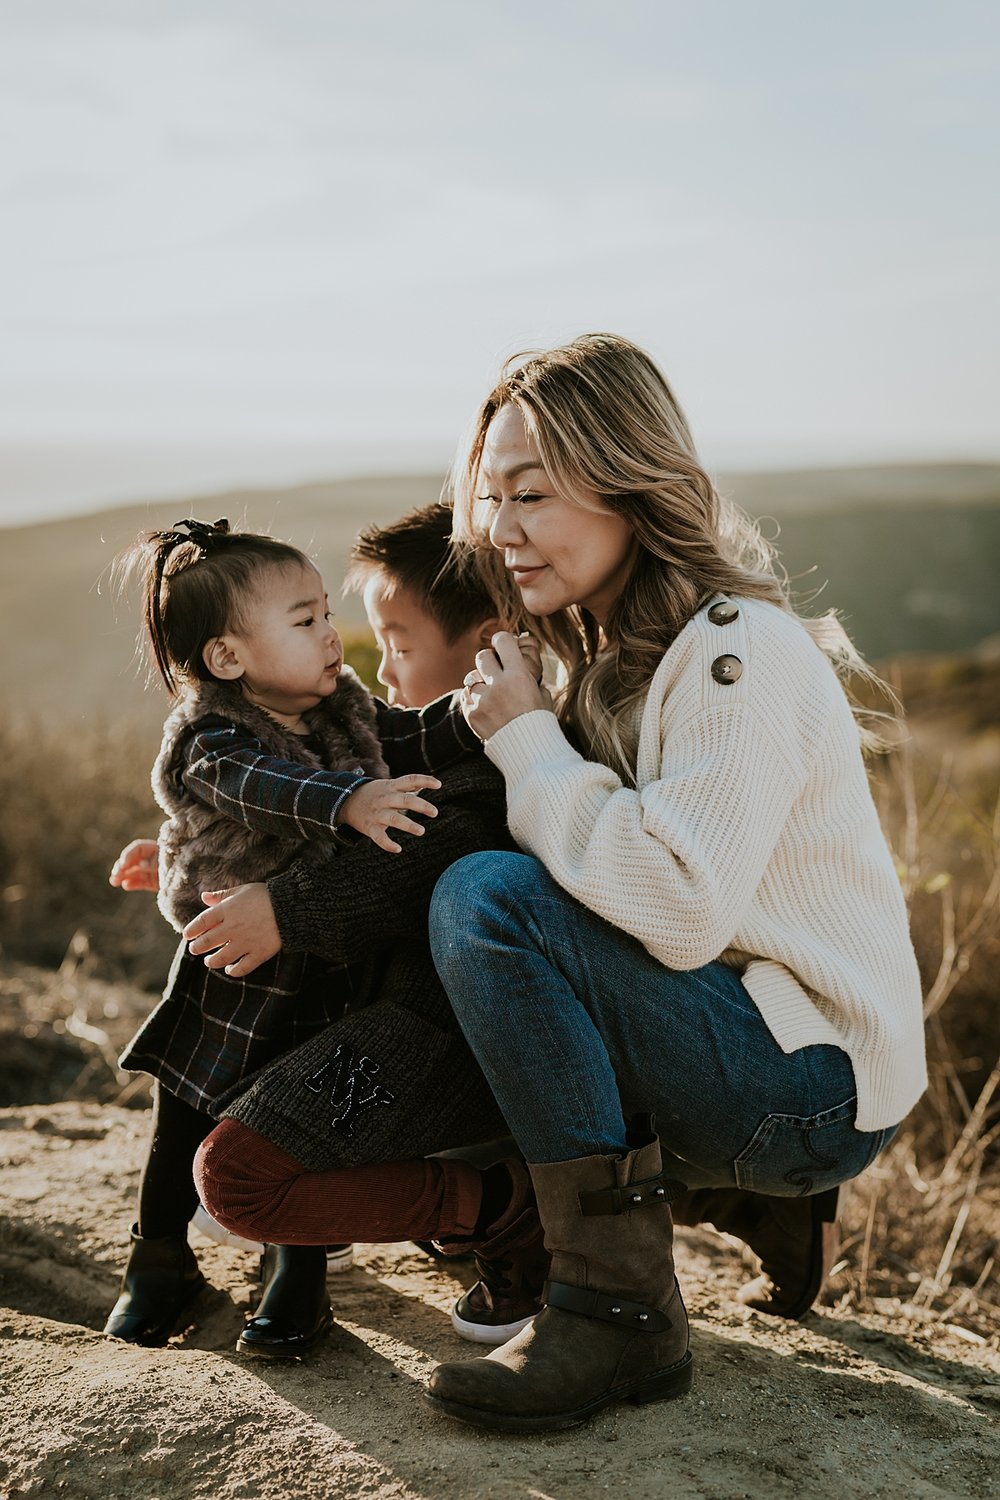 Orange County family photographer. Portrait of mama and her two babes hugging and playing on the dirt road during outdoor during family photo session at Top of the World Laguna Beach